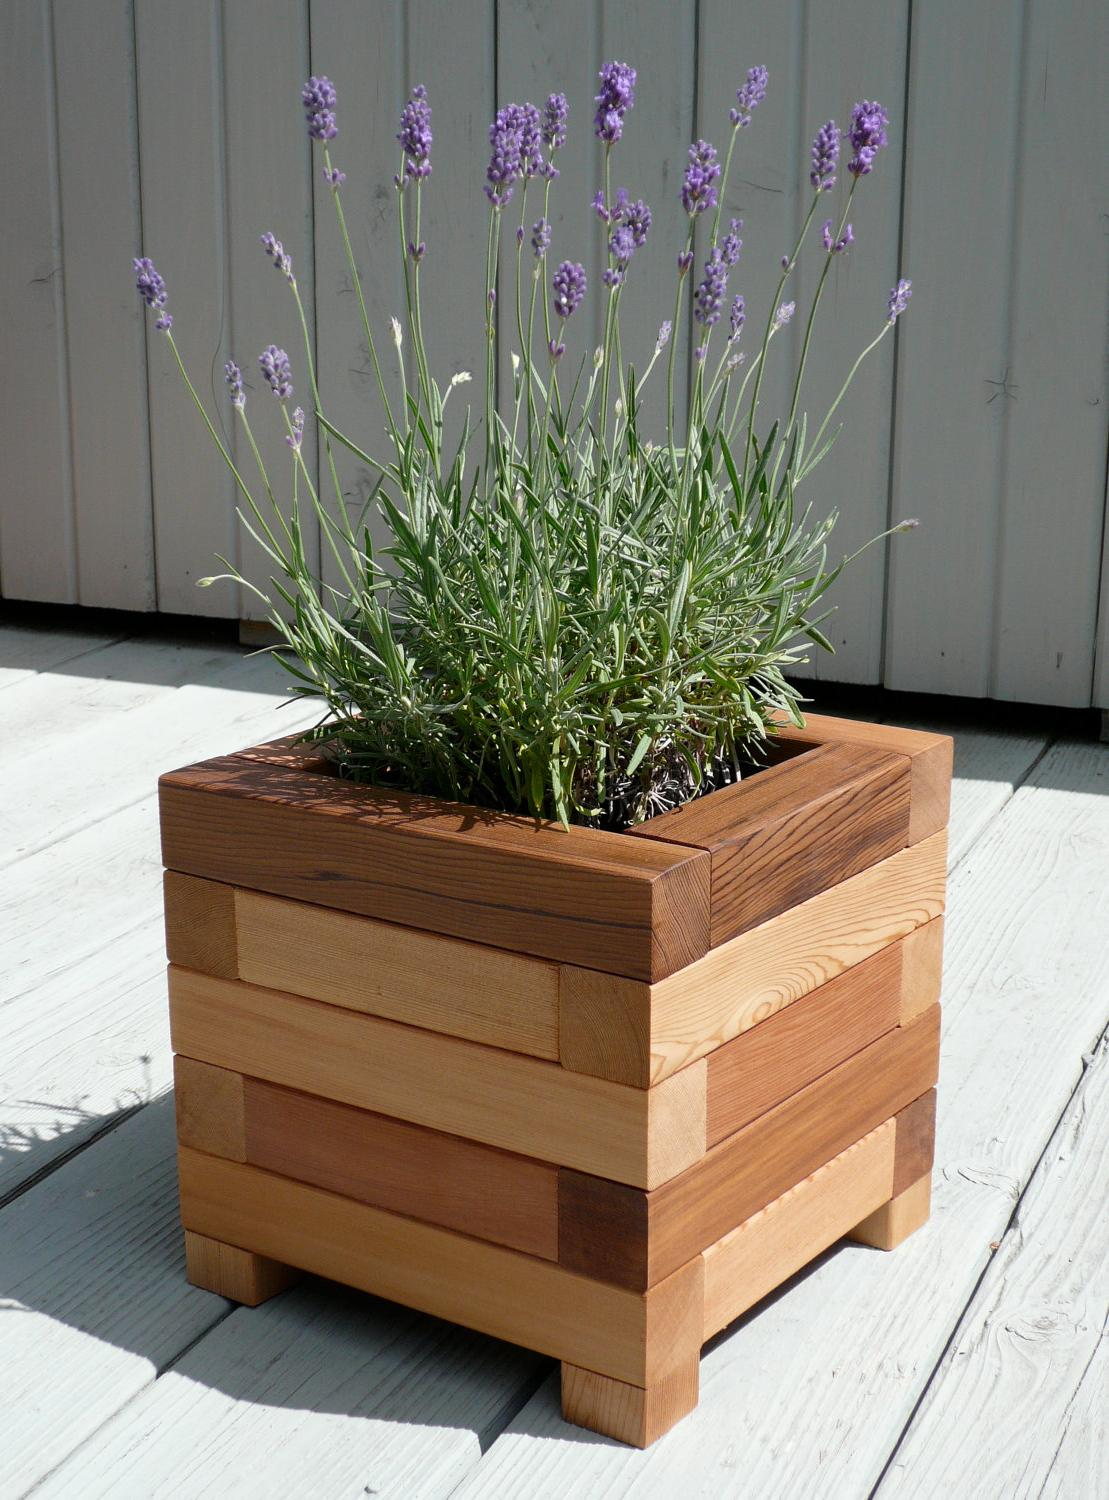 25 Wooden Plant Stands Ideas That Will Add Style To Your ... on House Plant Stand Ideas  id=34347